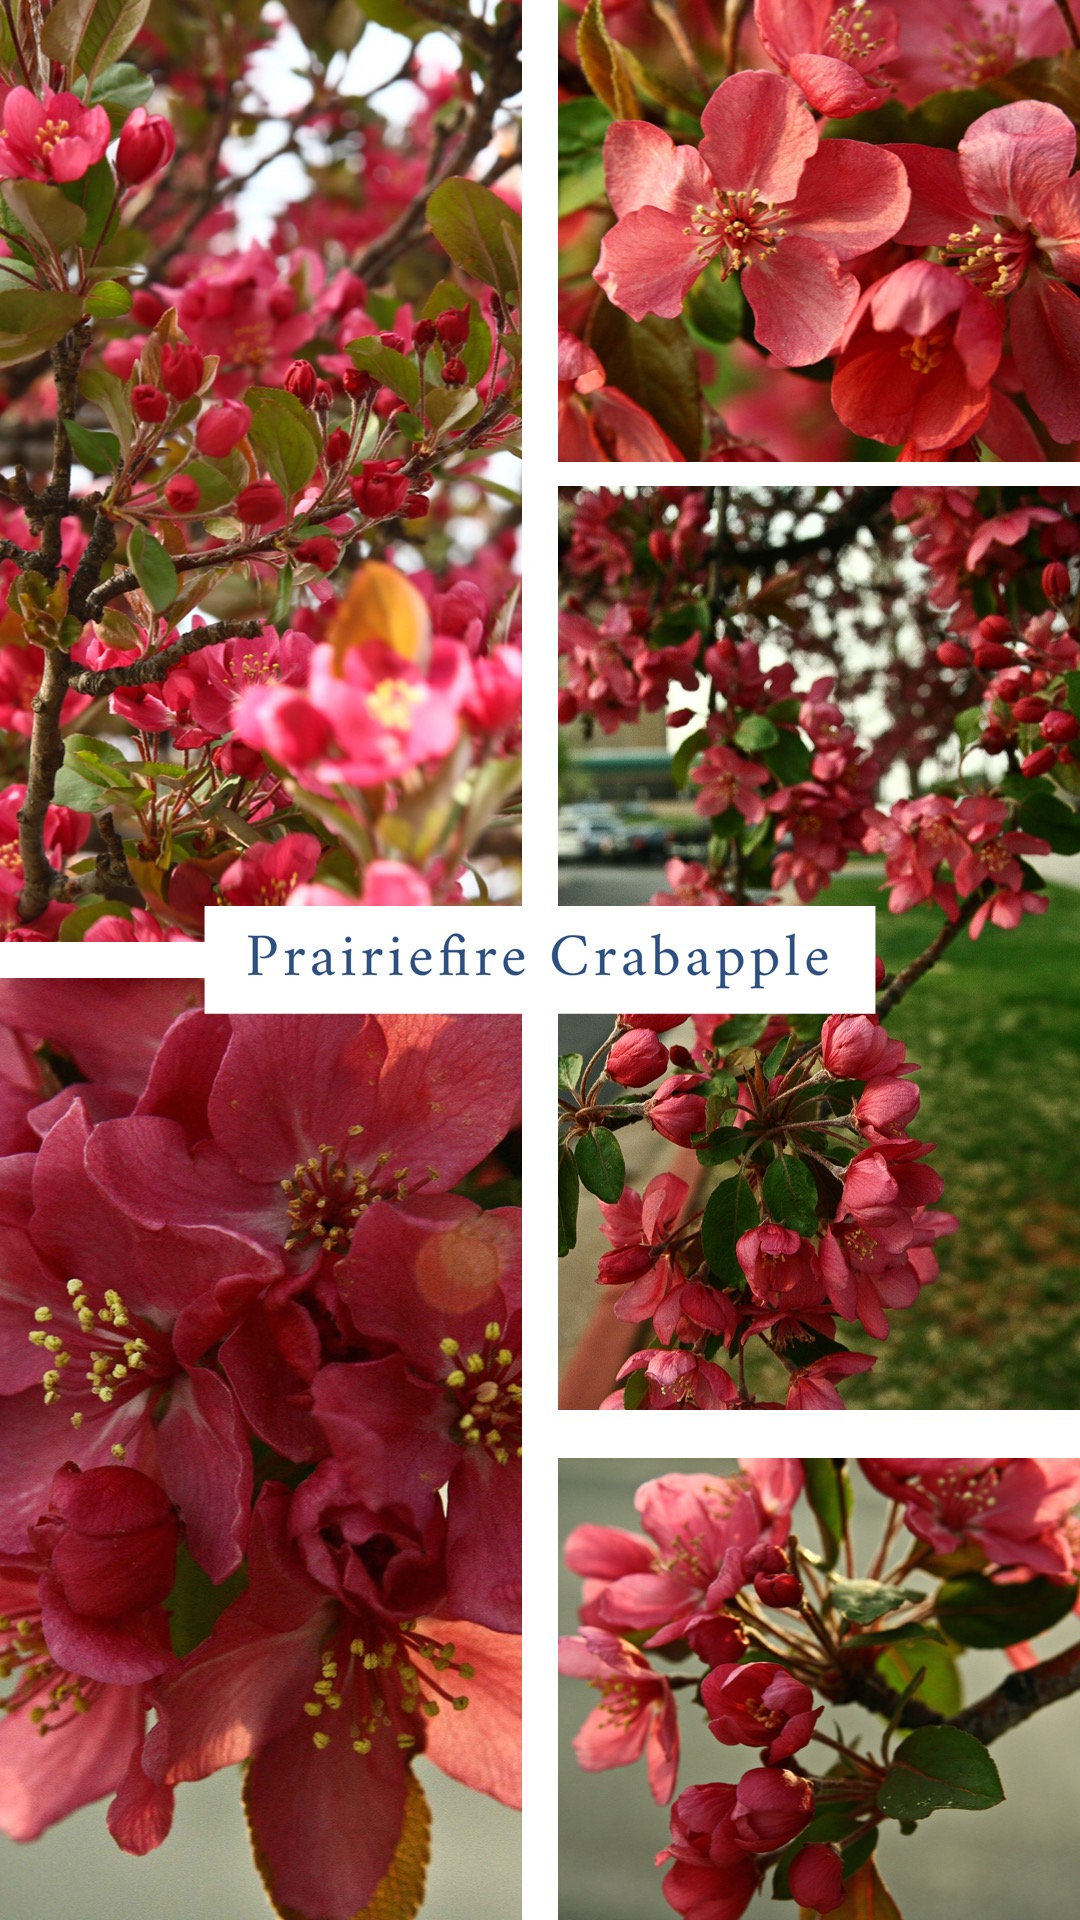 Crabapple (Malus 'Prairifire).  There are many varieties of crabapples, but 'Prairifire' is one of the best. It was the Oklahoma Proven Tree of the Year in 2007. It is disease resistant and not phased by most of the problems with crabapples. Flowers of rose-pink cover the tree as soon as leaves emerge. Young leaves go from purple-red to dark green as they mature. Branches have red fruit in the winter. Mature, 20-25', trees have a rounded top. Plant in full sun as a specimen tree or in a grouping. Water extra during periods of extreme heat or draught.